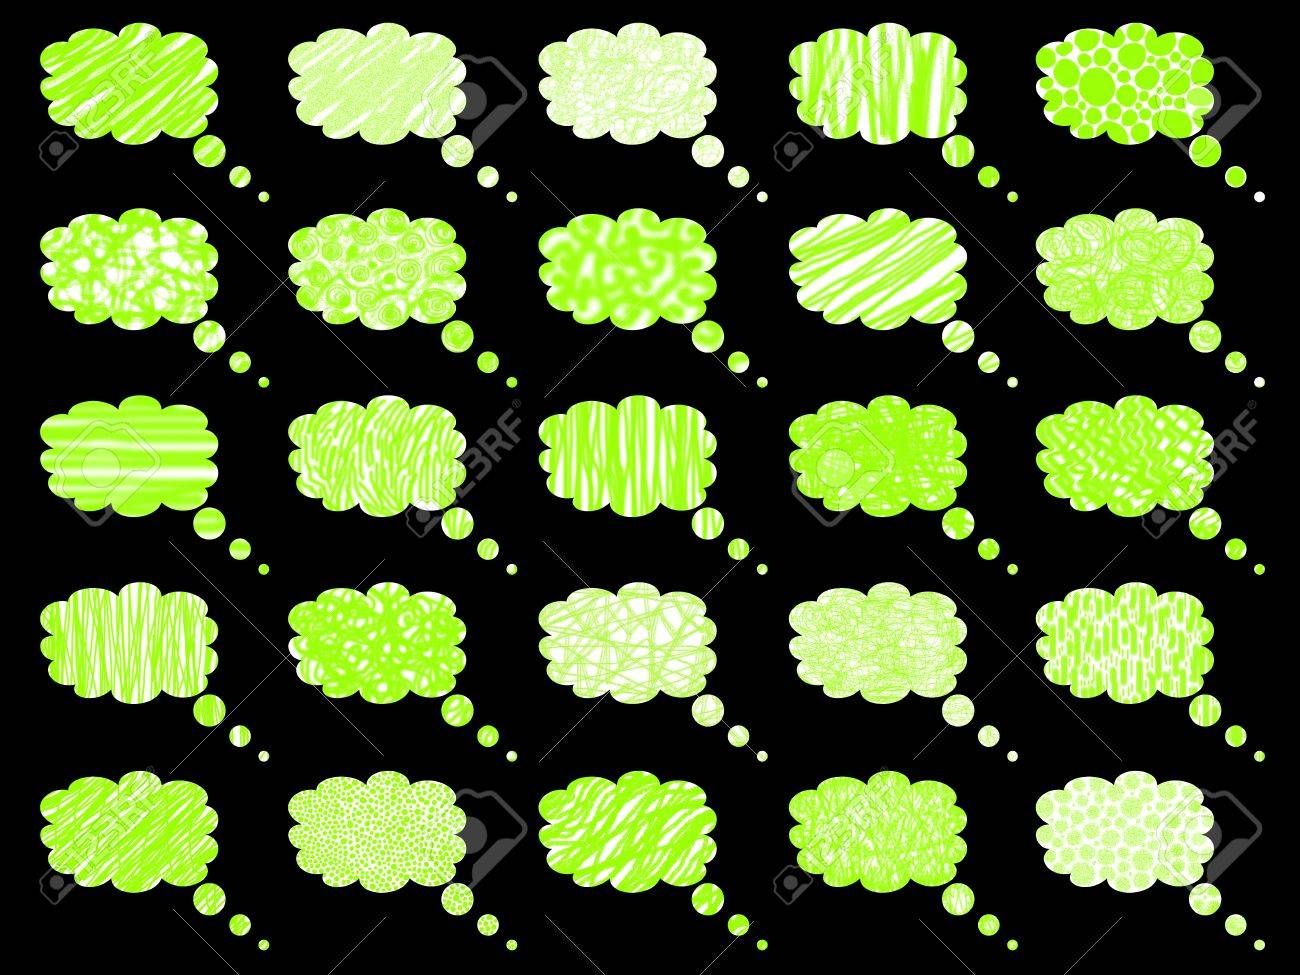 Fluorescent green bubble balloons clouds for comic dialogues Stock Photo - 11734918